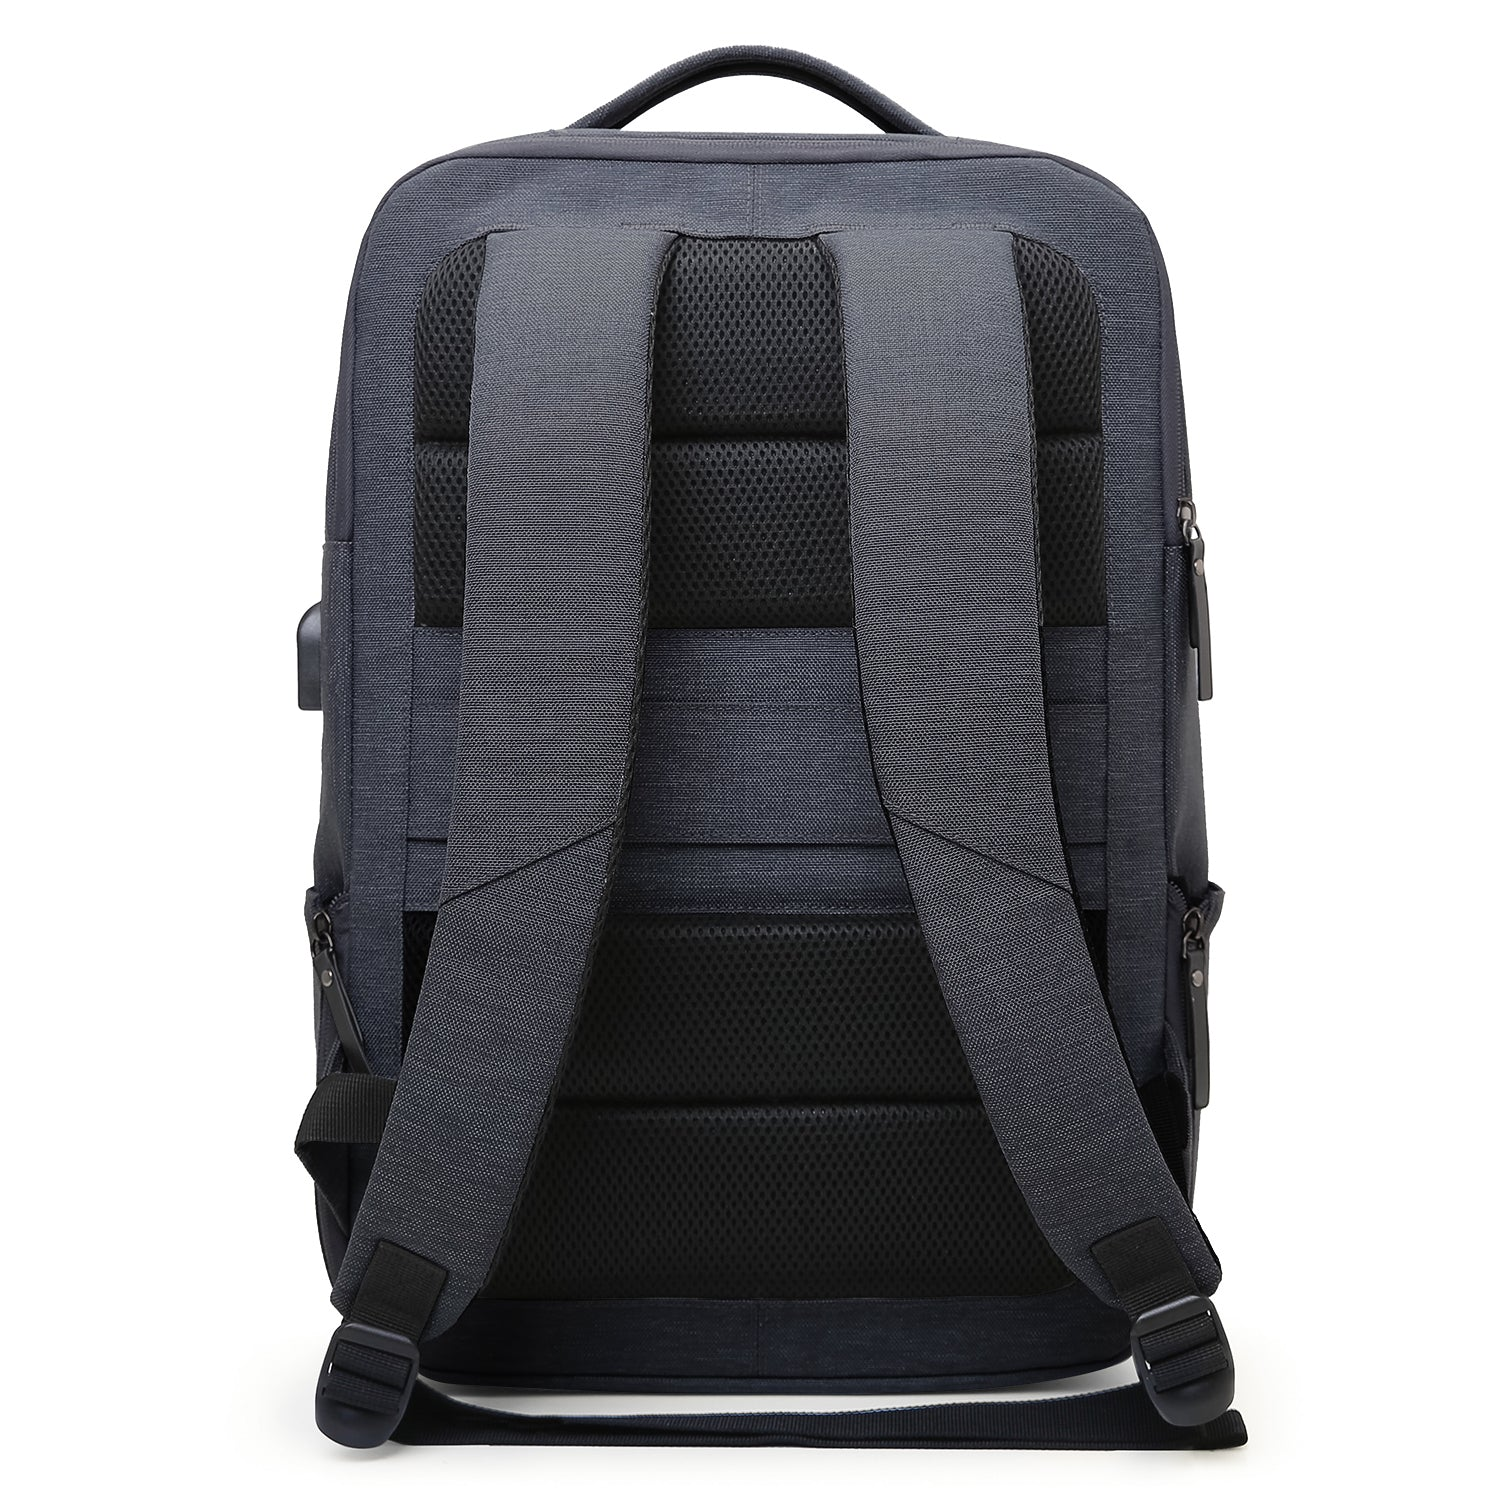 bca389168e Laptop Backpack Business Bags with USB Charging Port Anti-Theft Water  Resistant Polyester School Bookbag